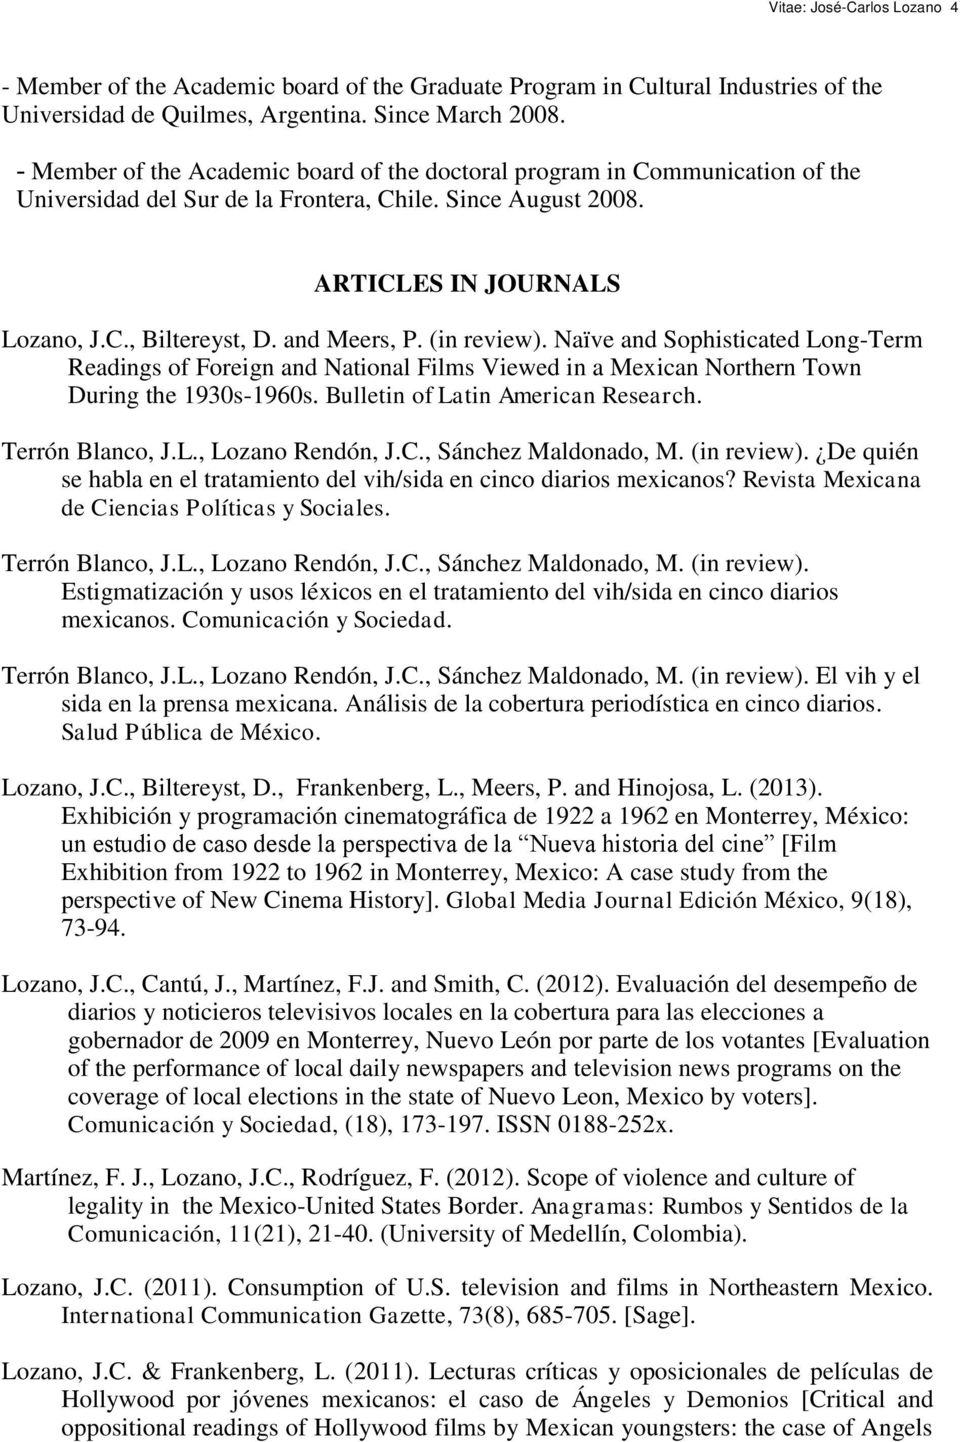 and Meers, P. (in review). Naïve and Sophisticated Long-Term Readings of Foreign and National Films Viewed in a Mexican Northern Town During the 1930s-1960s. Bulletin of Latin American Research.